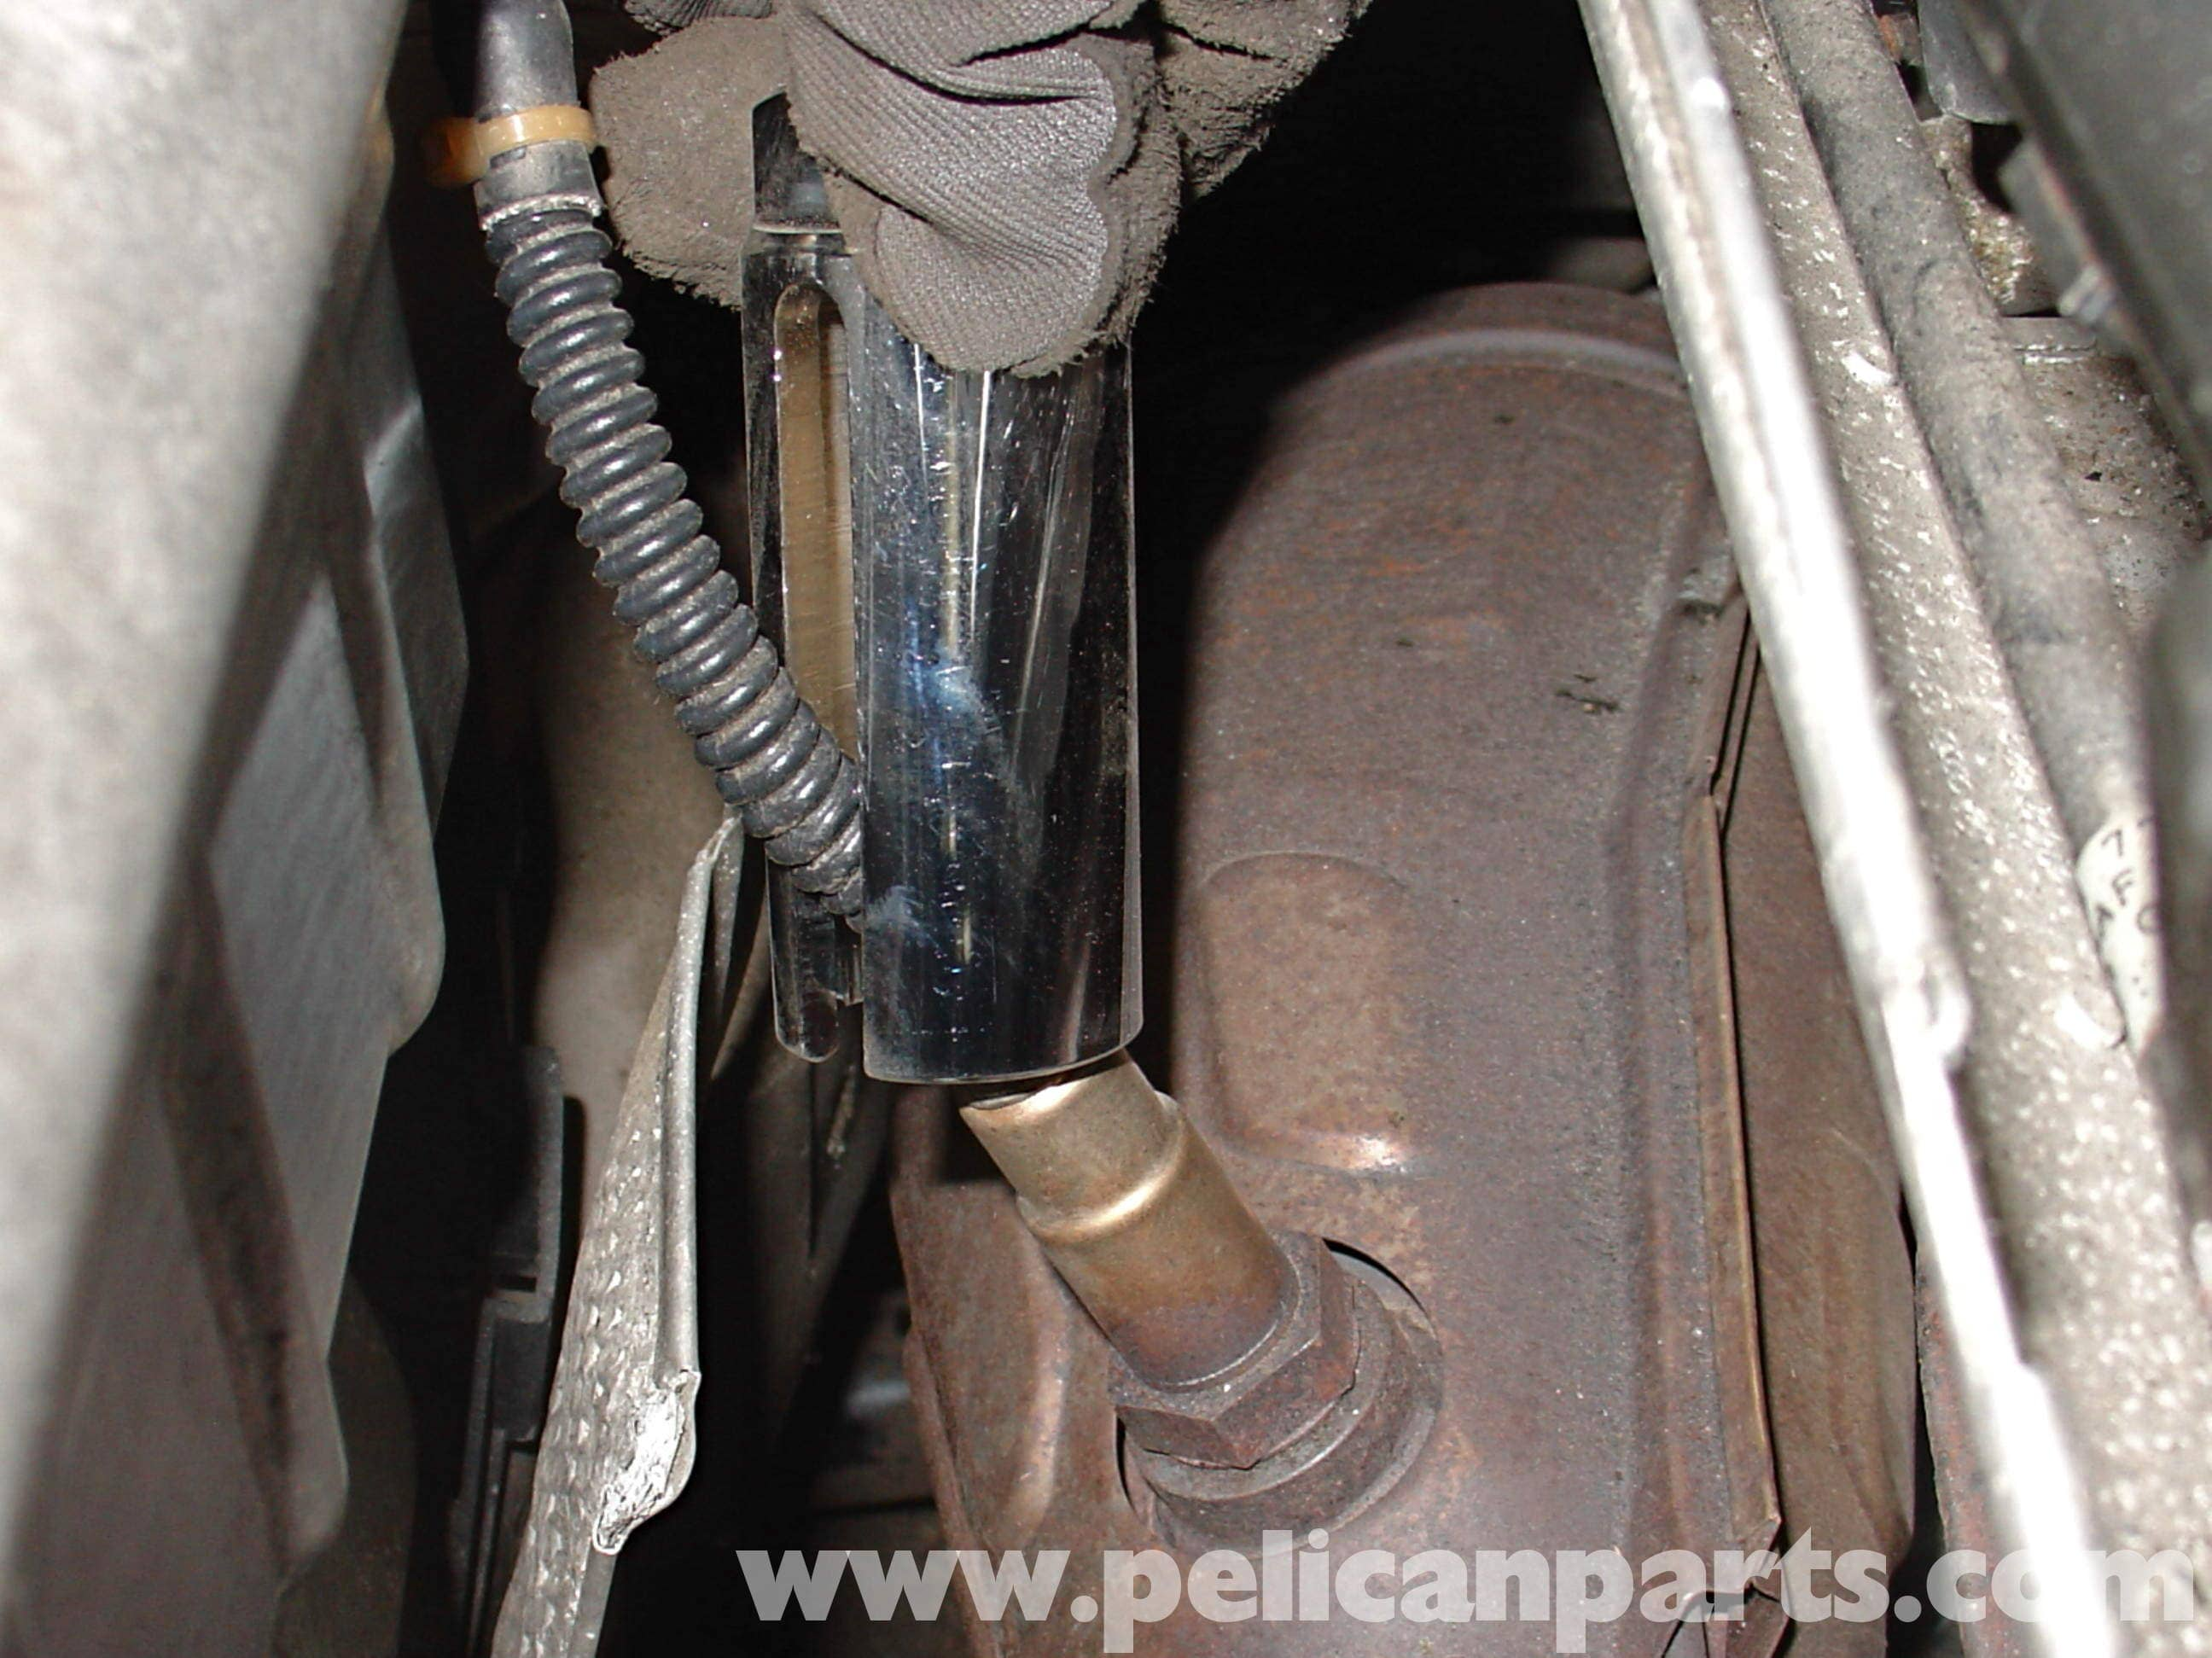 Audi A4 1 8t Volkswagen Oxygen Sensor Replacement Golf Jetta Passat Beetle Pelican Parts Diy Maintenance Article